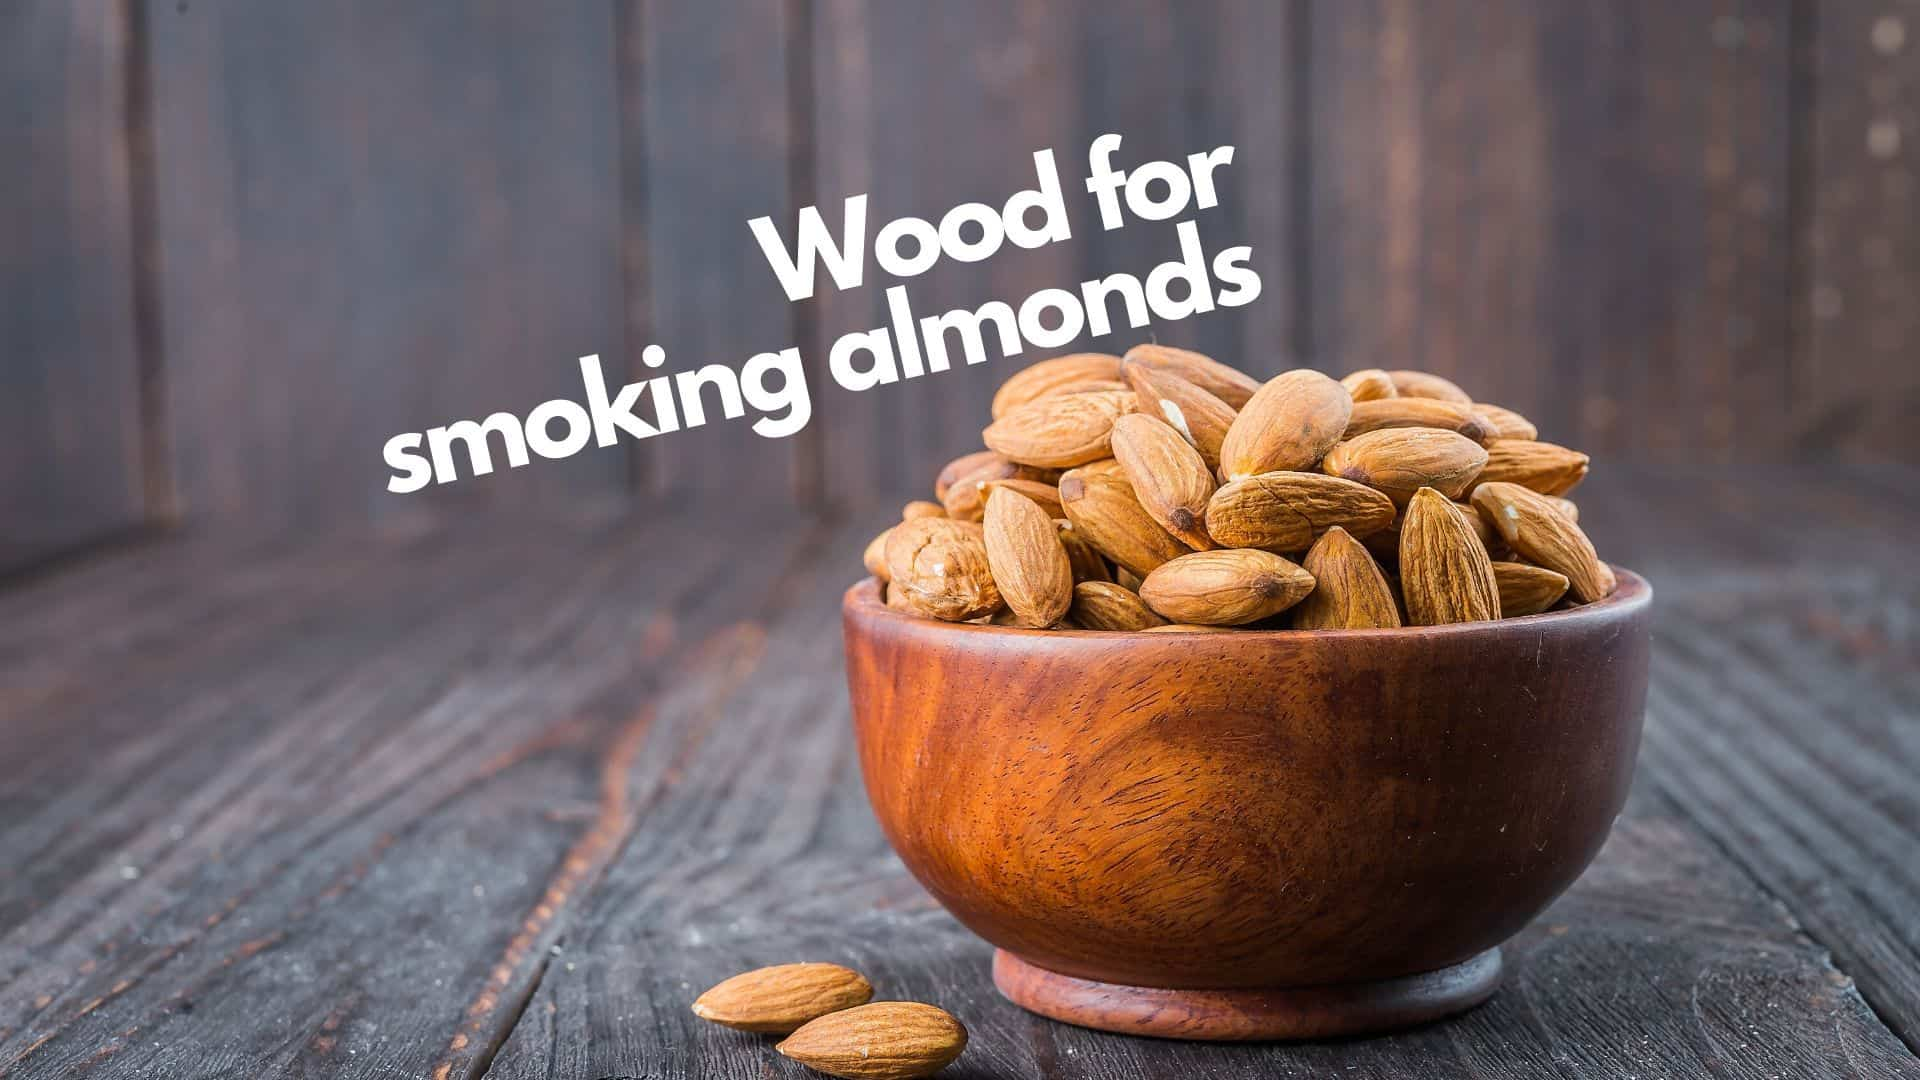 Best Wood For Smoking Almonds 4 Top Choices Amp 5 To Avoid